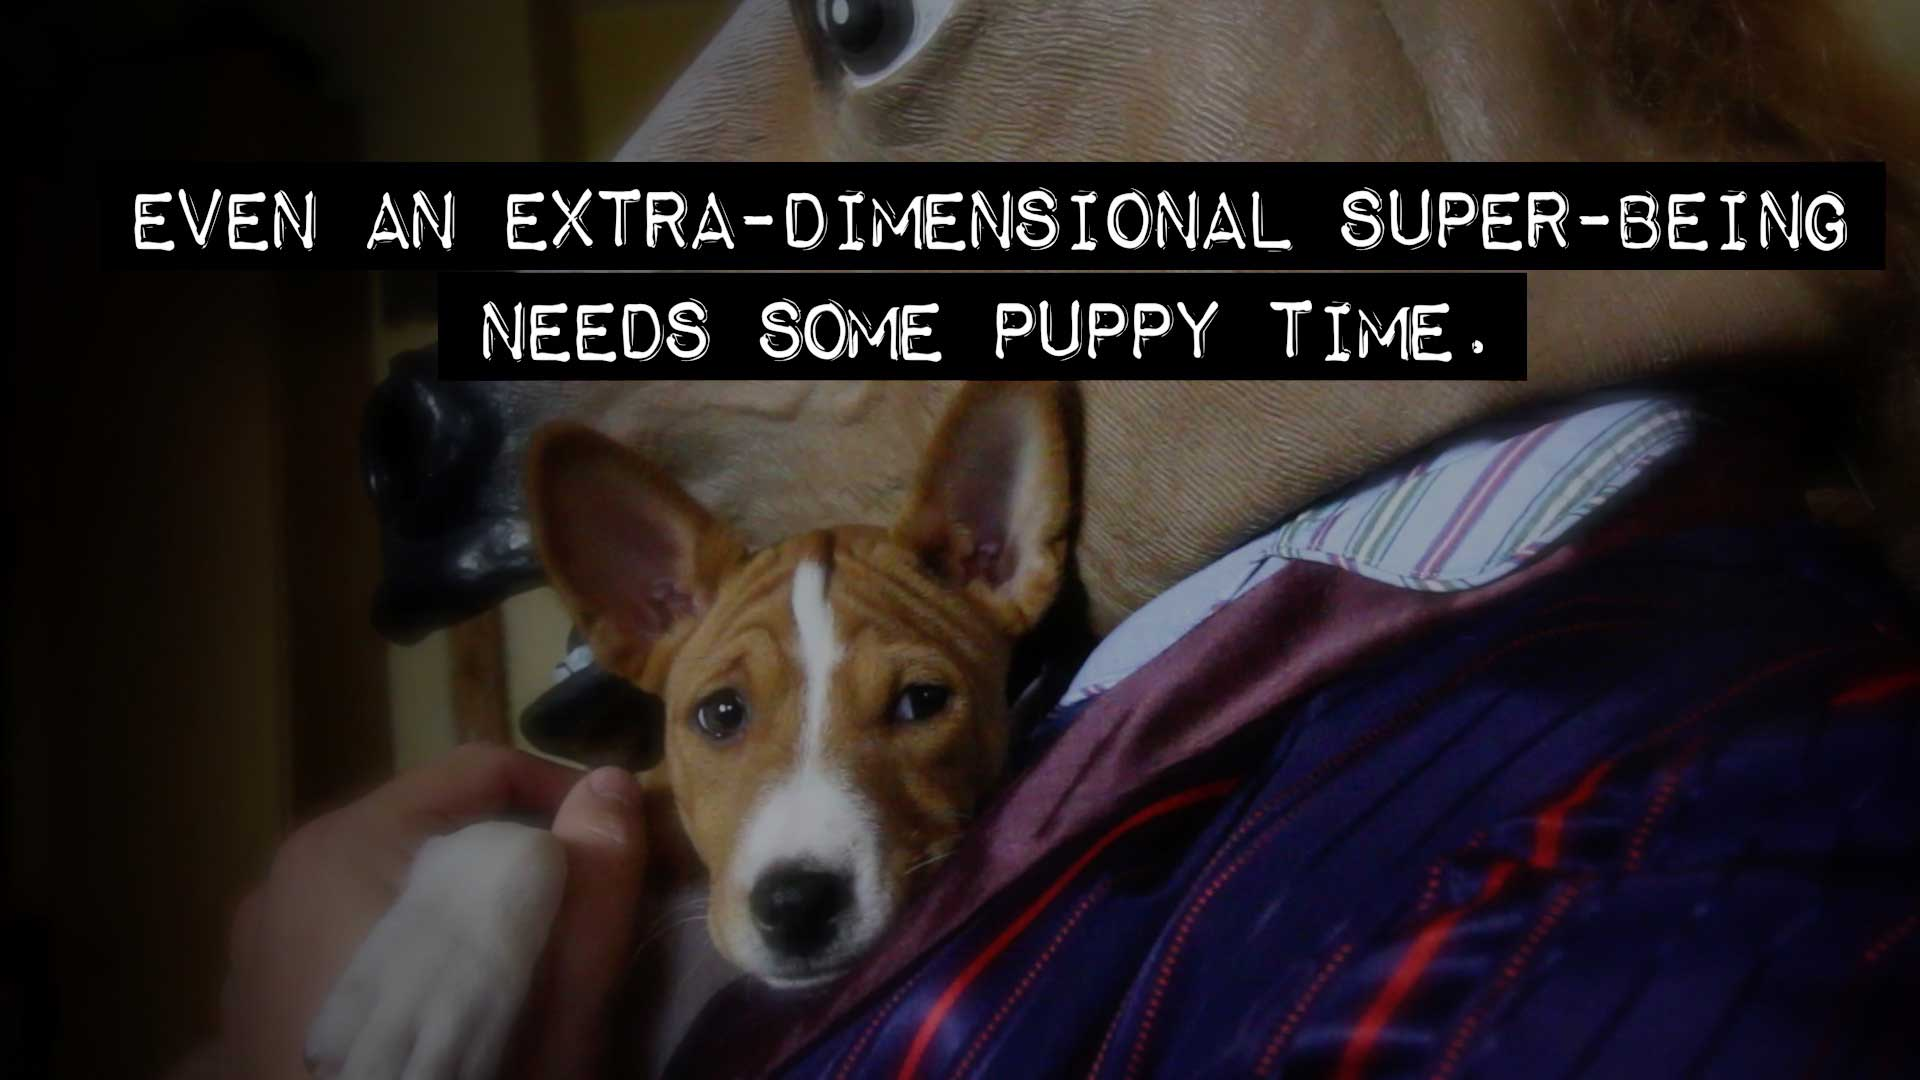 Horse Head holding a puppy. Text: Even an extra-dimensional super-being needs some puppy time.